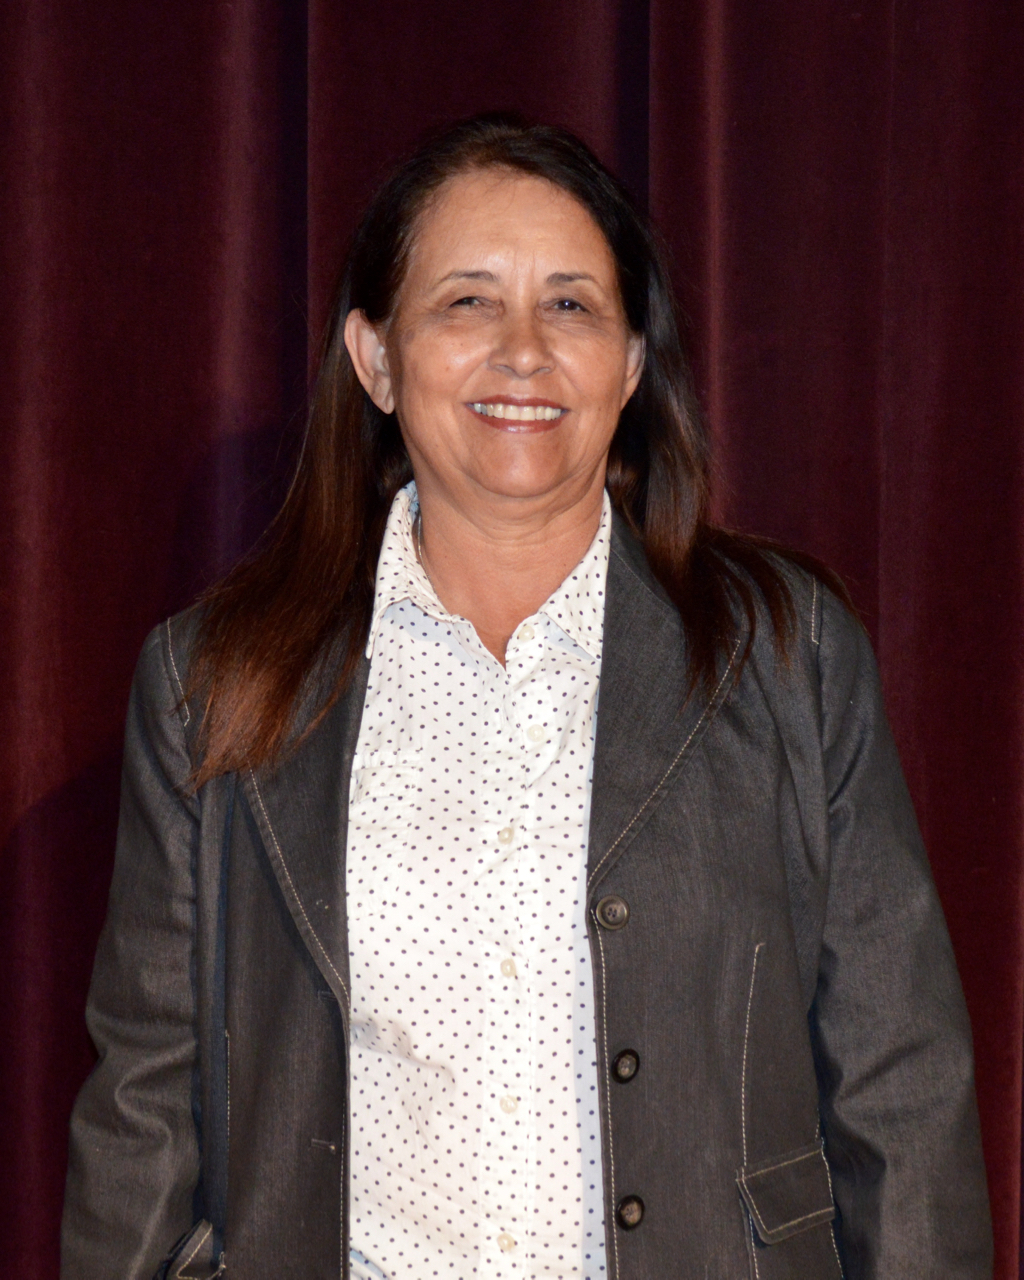 ManagerAndrea DaLuz